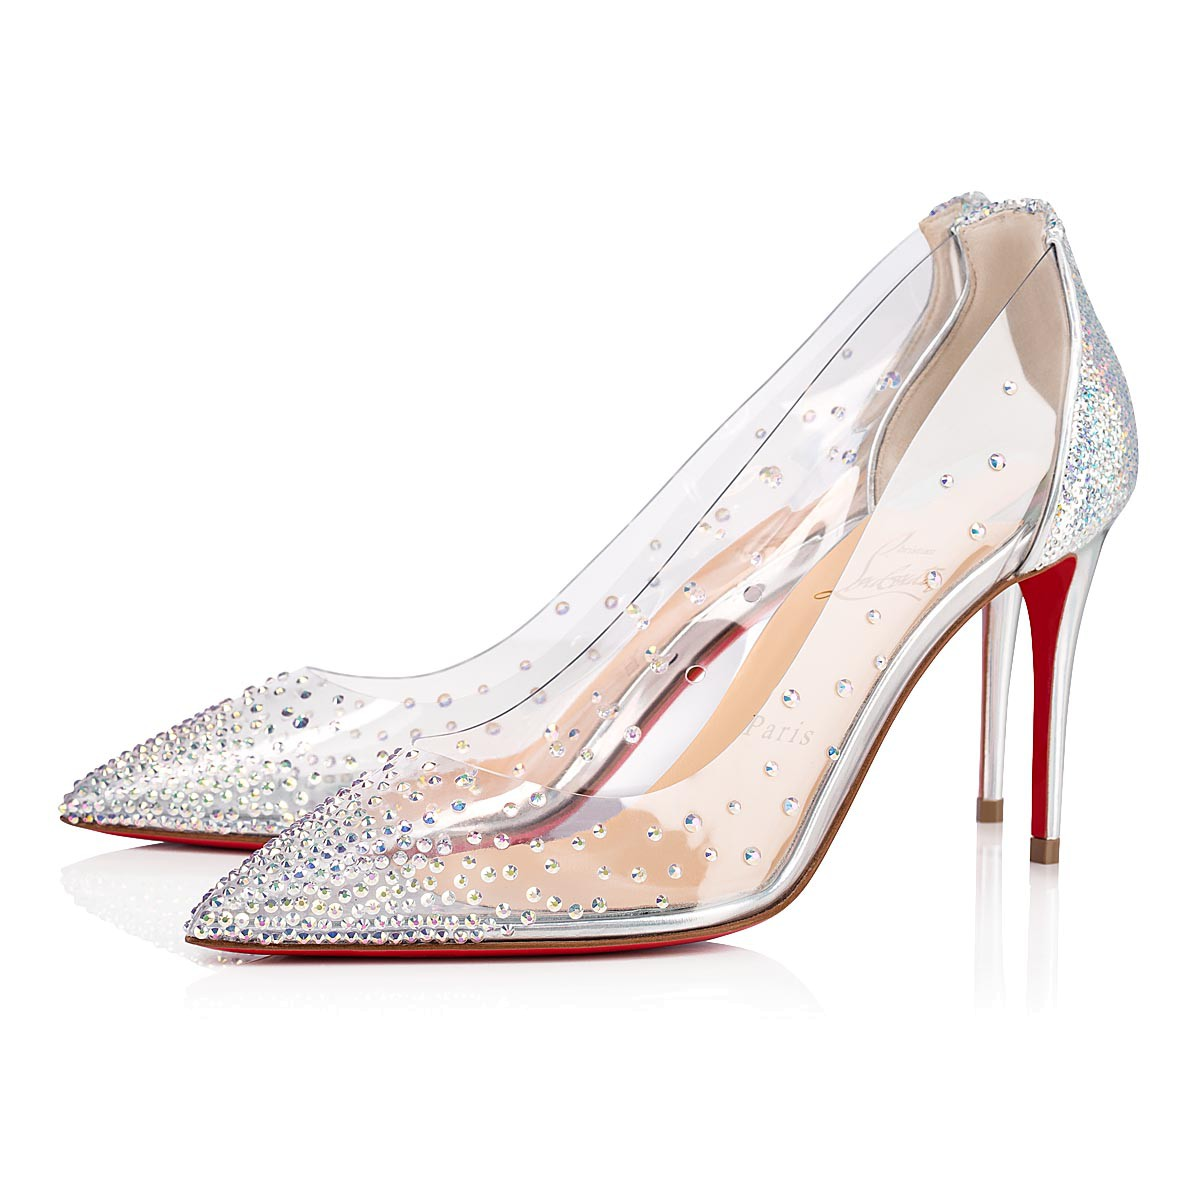 brand new cd775 80037 Degrastrass 85 Silver Paillete - Women Shoes - Christian Louboutin